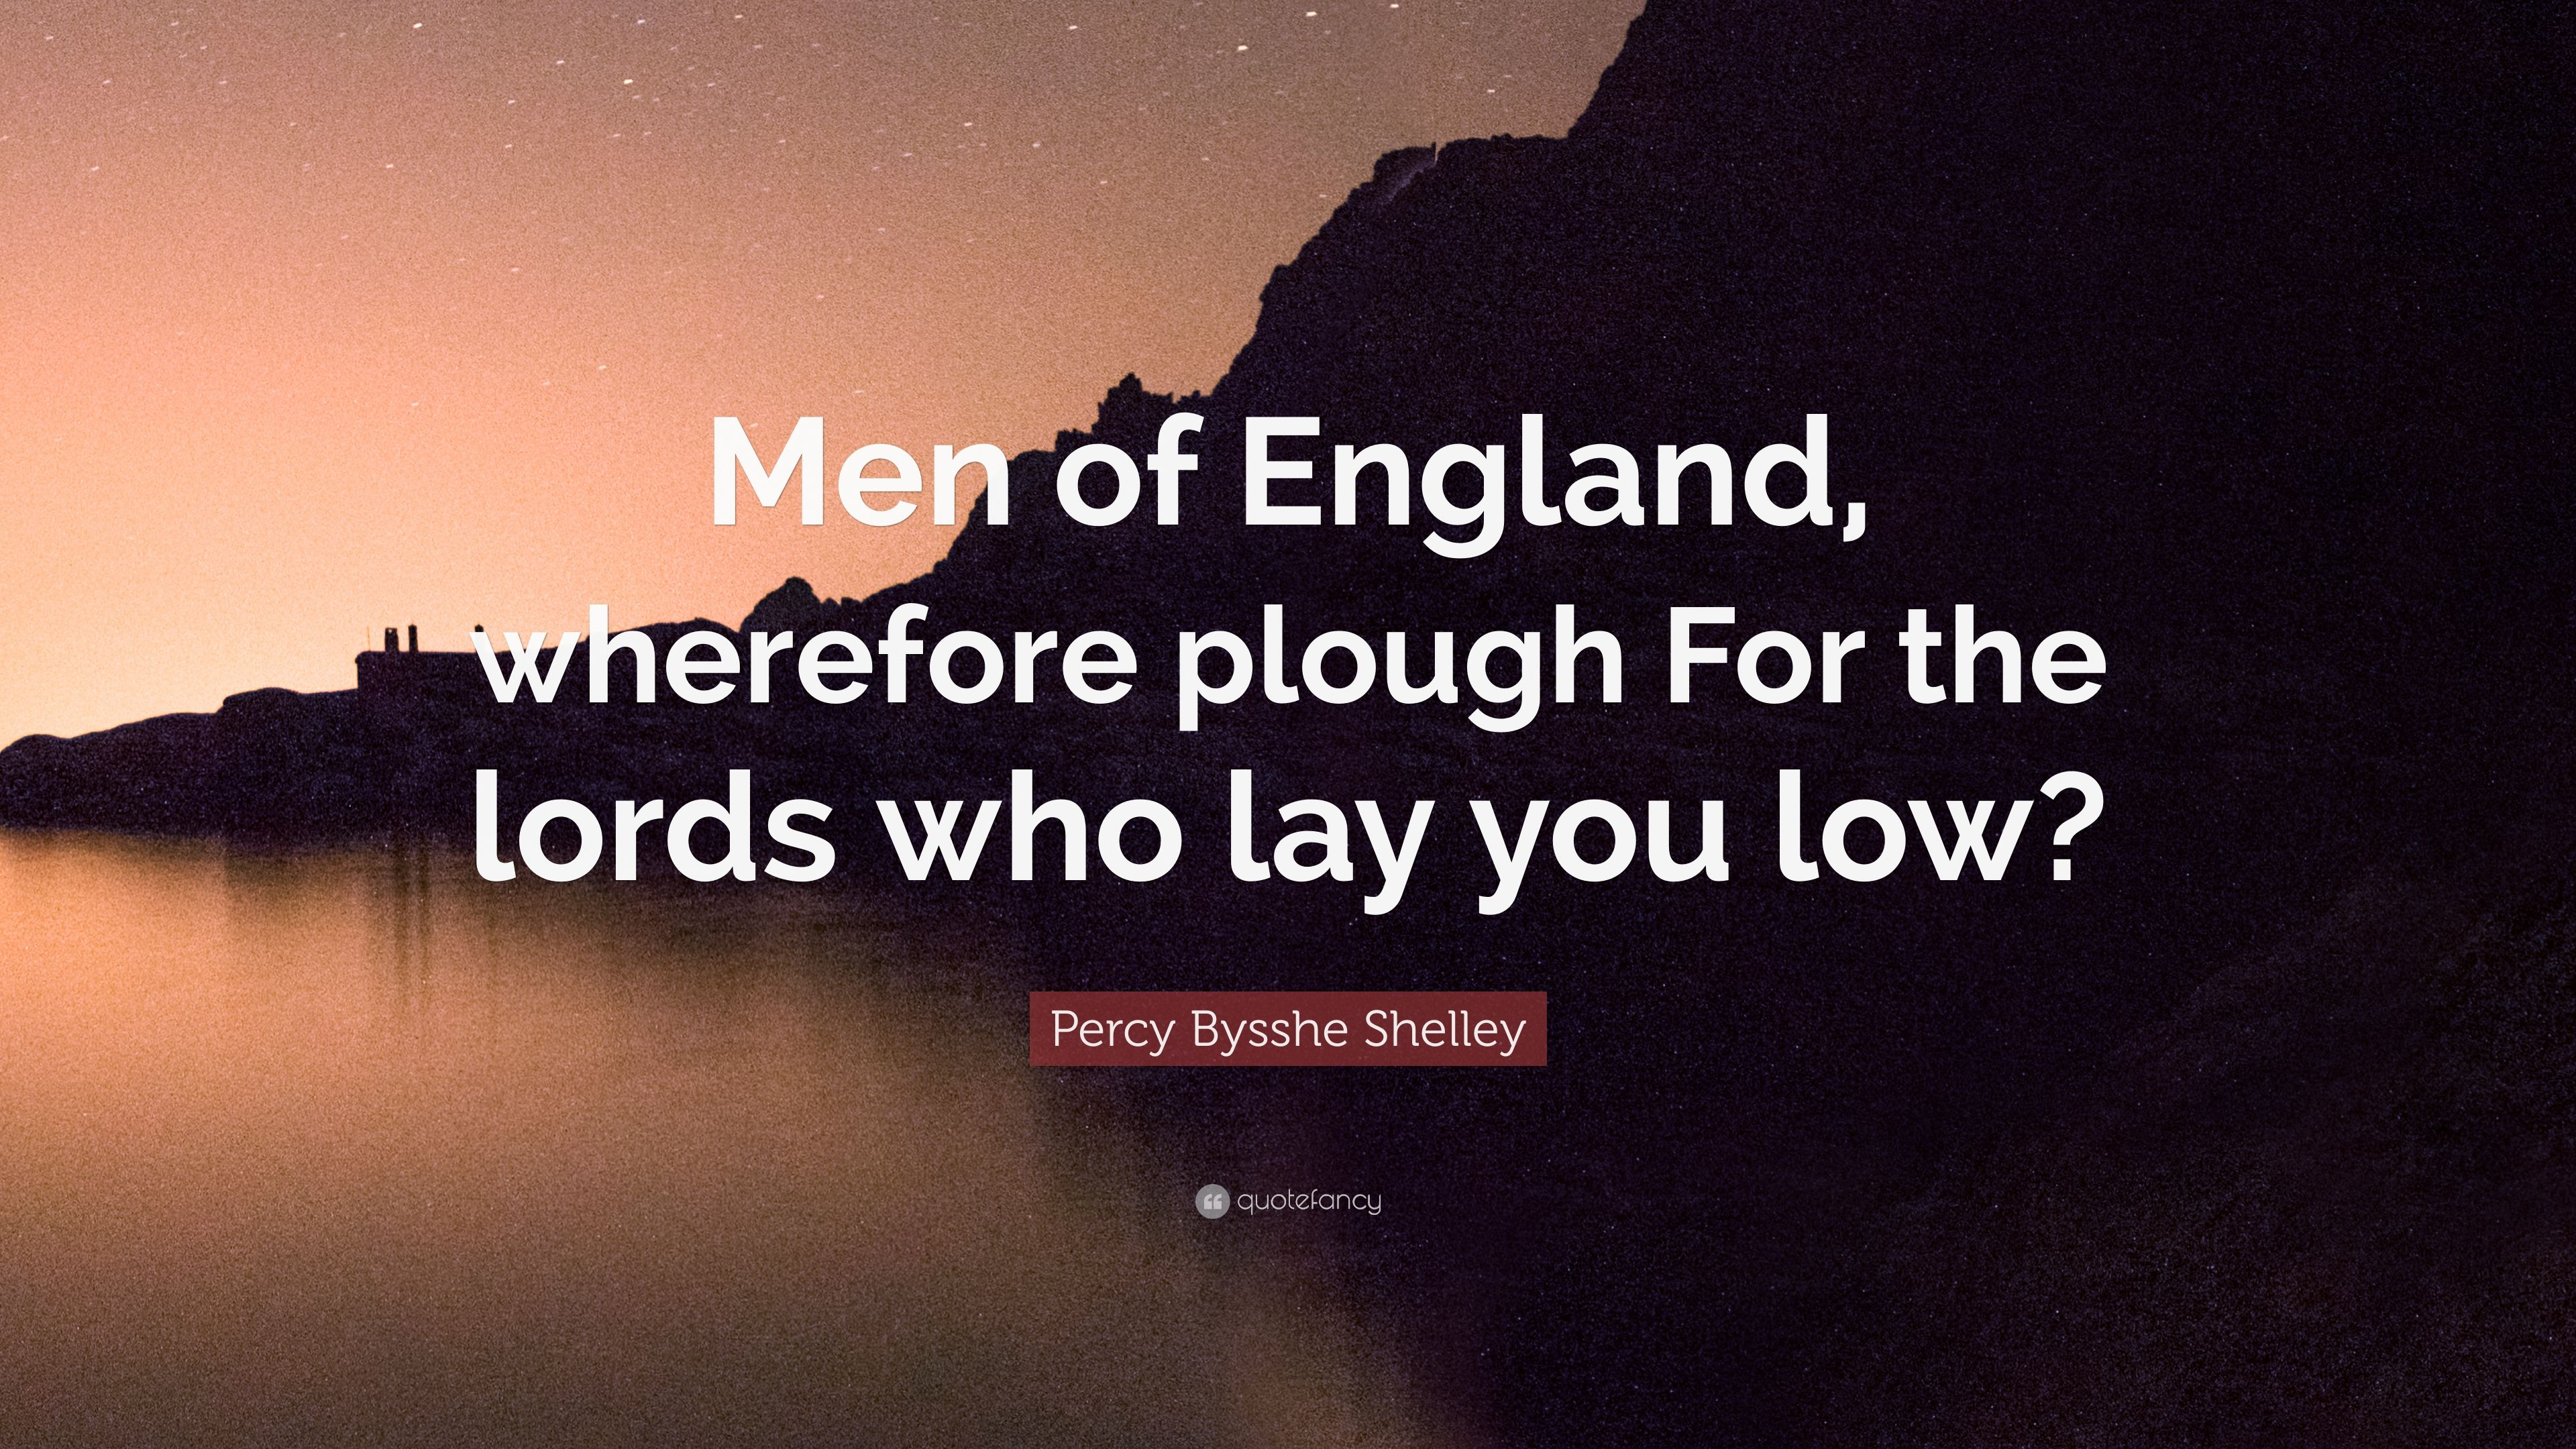 the men of england